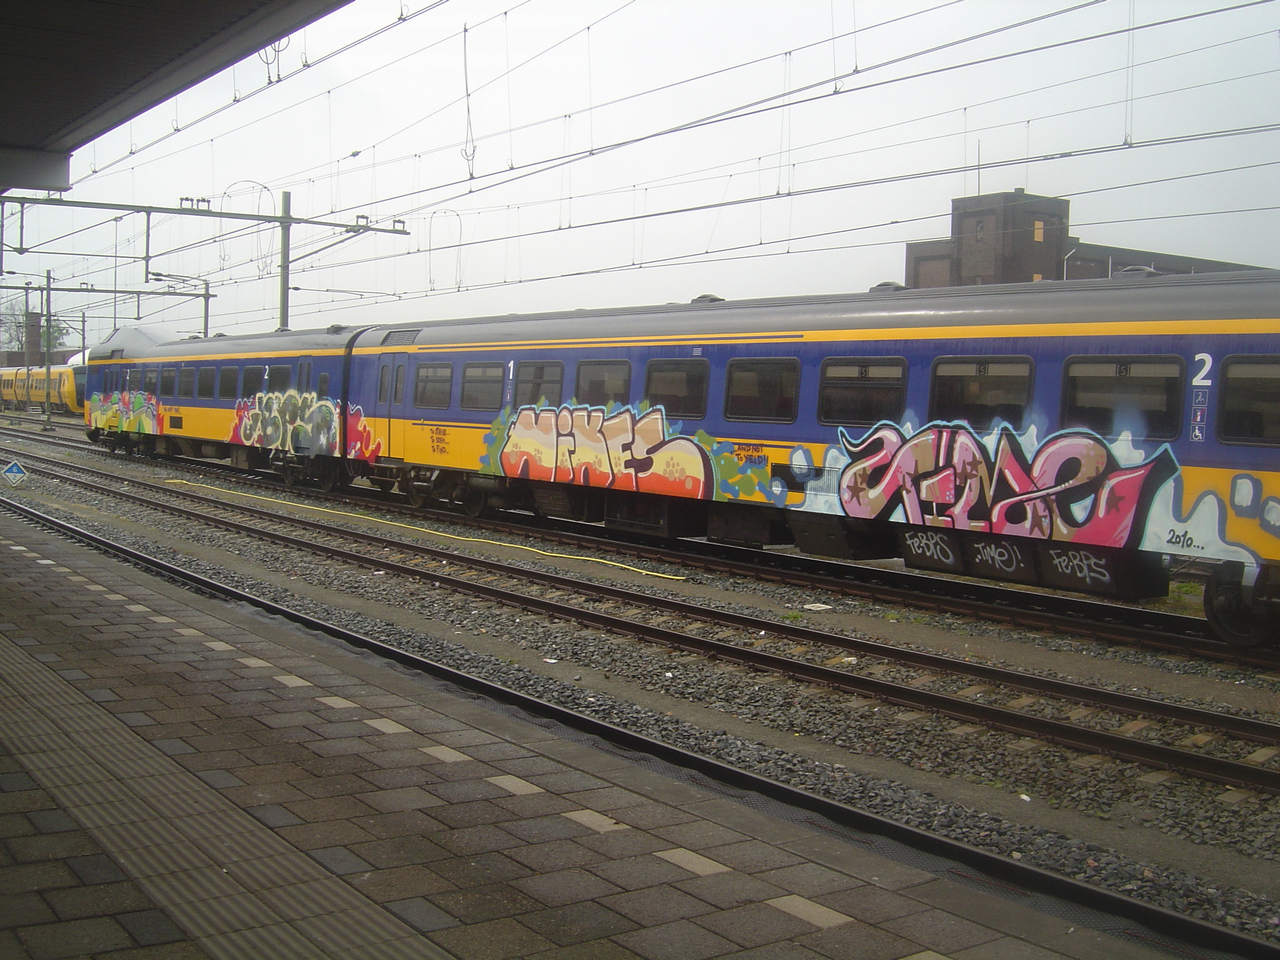 Press also Frida Kahlo By Marko 93 also Stjer egn Tyren wallstickers furthermore Cigar Smoke Wolverine Graffiti Pulse 145259 together with Art Work. on graffiti art